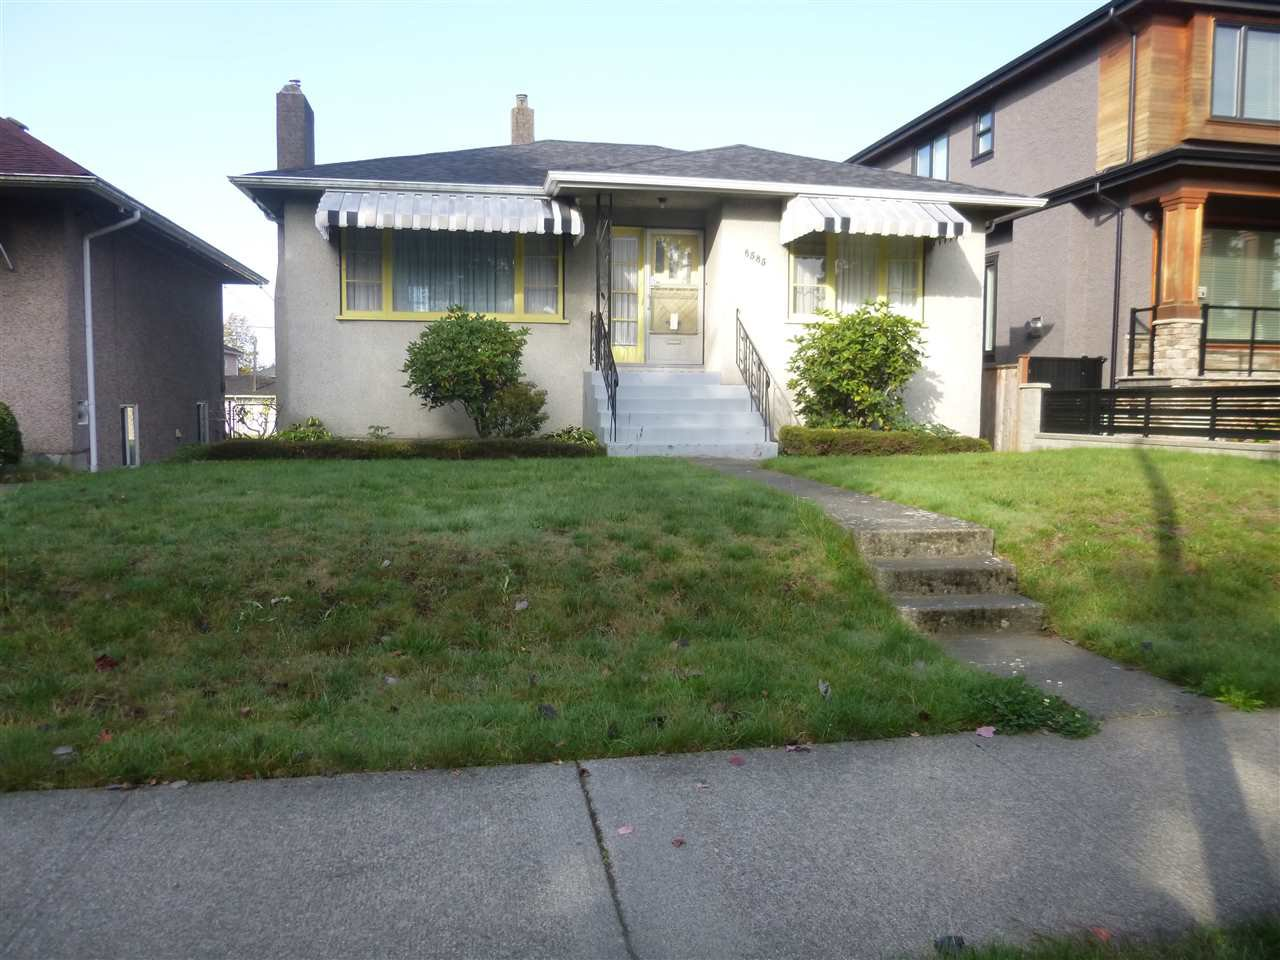 Main Photo: 6585 BROOKS Street in Vancouver: Killarney VE House for sale (Vancouver East)  : MLS®# R2113153